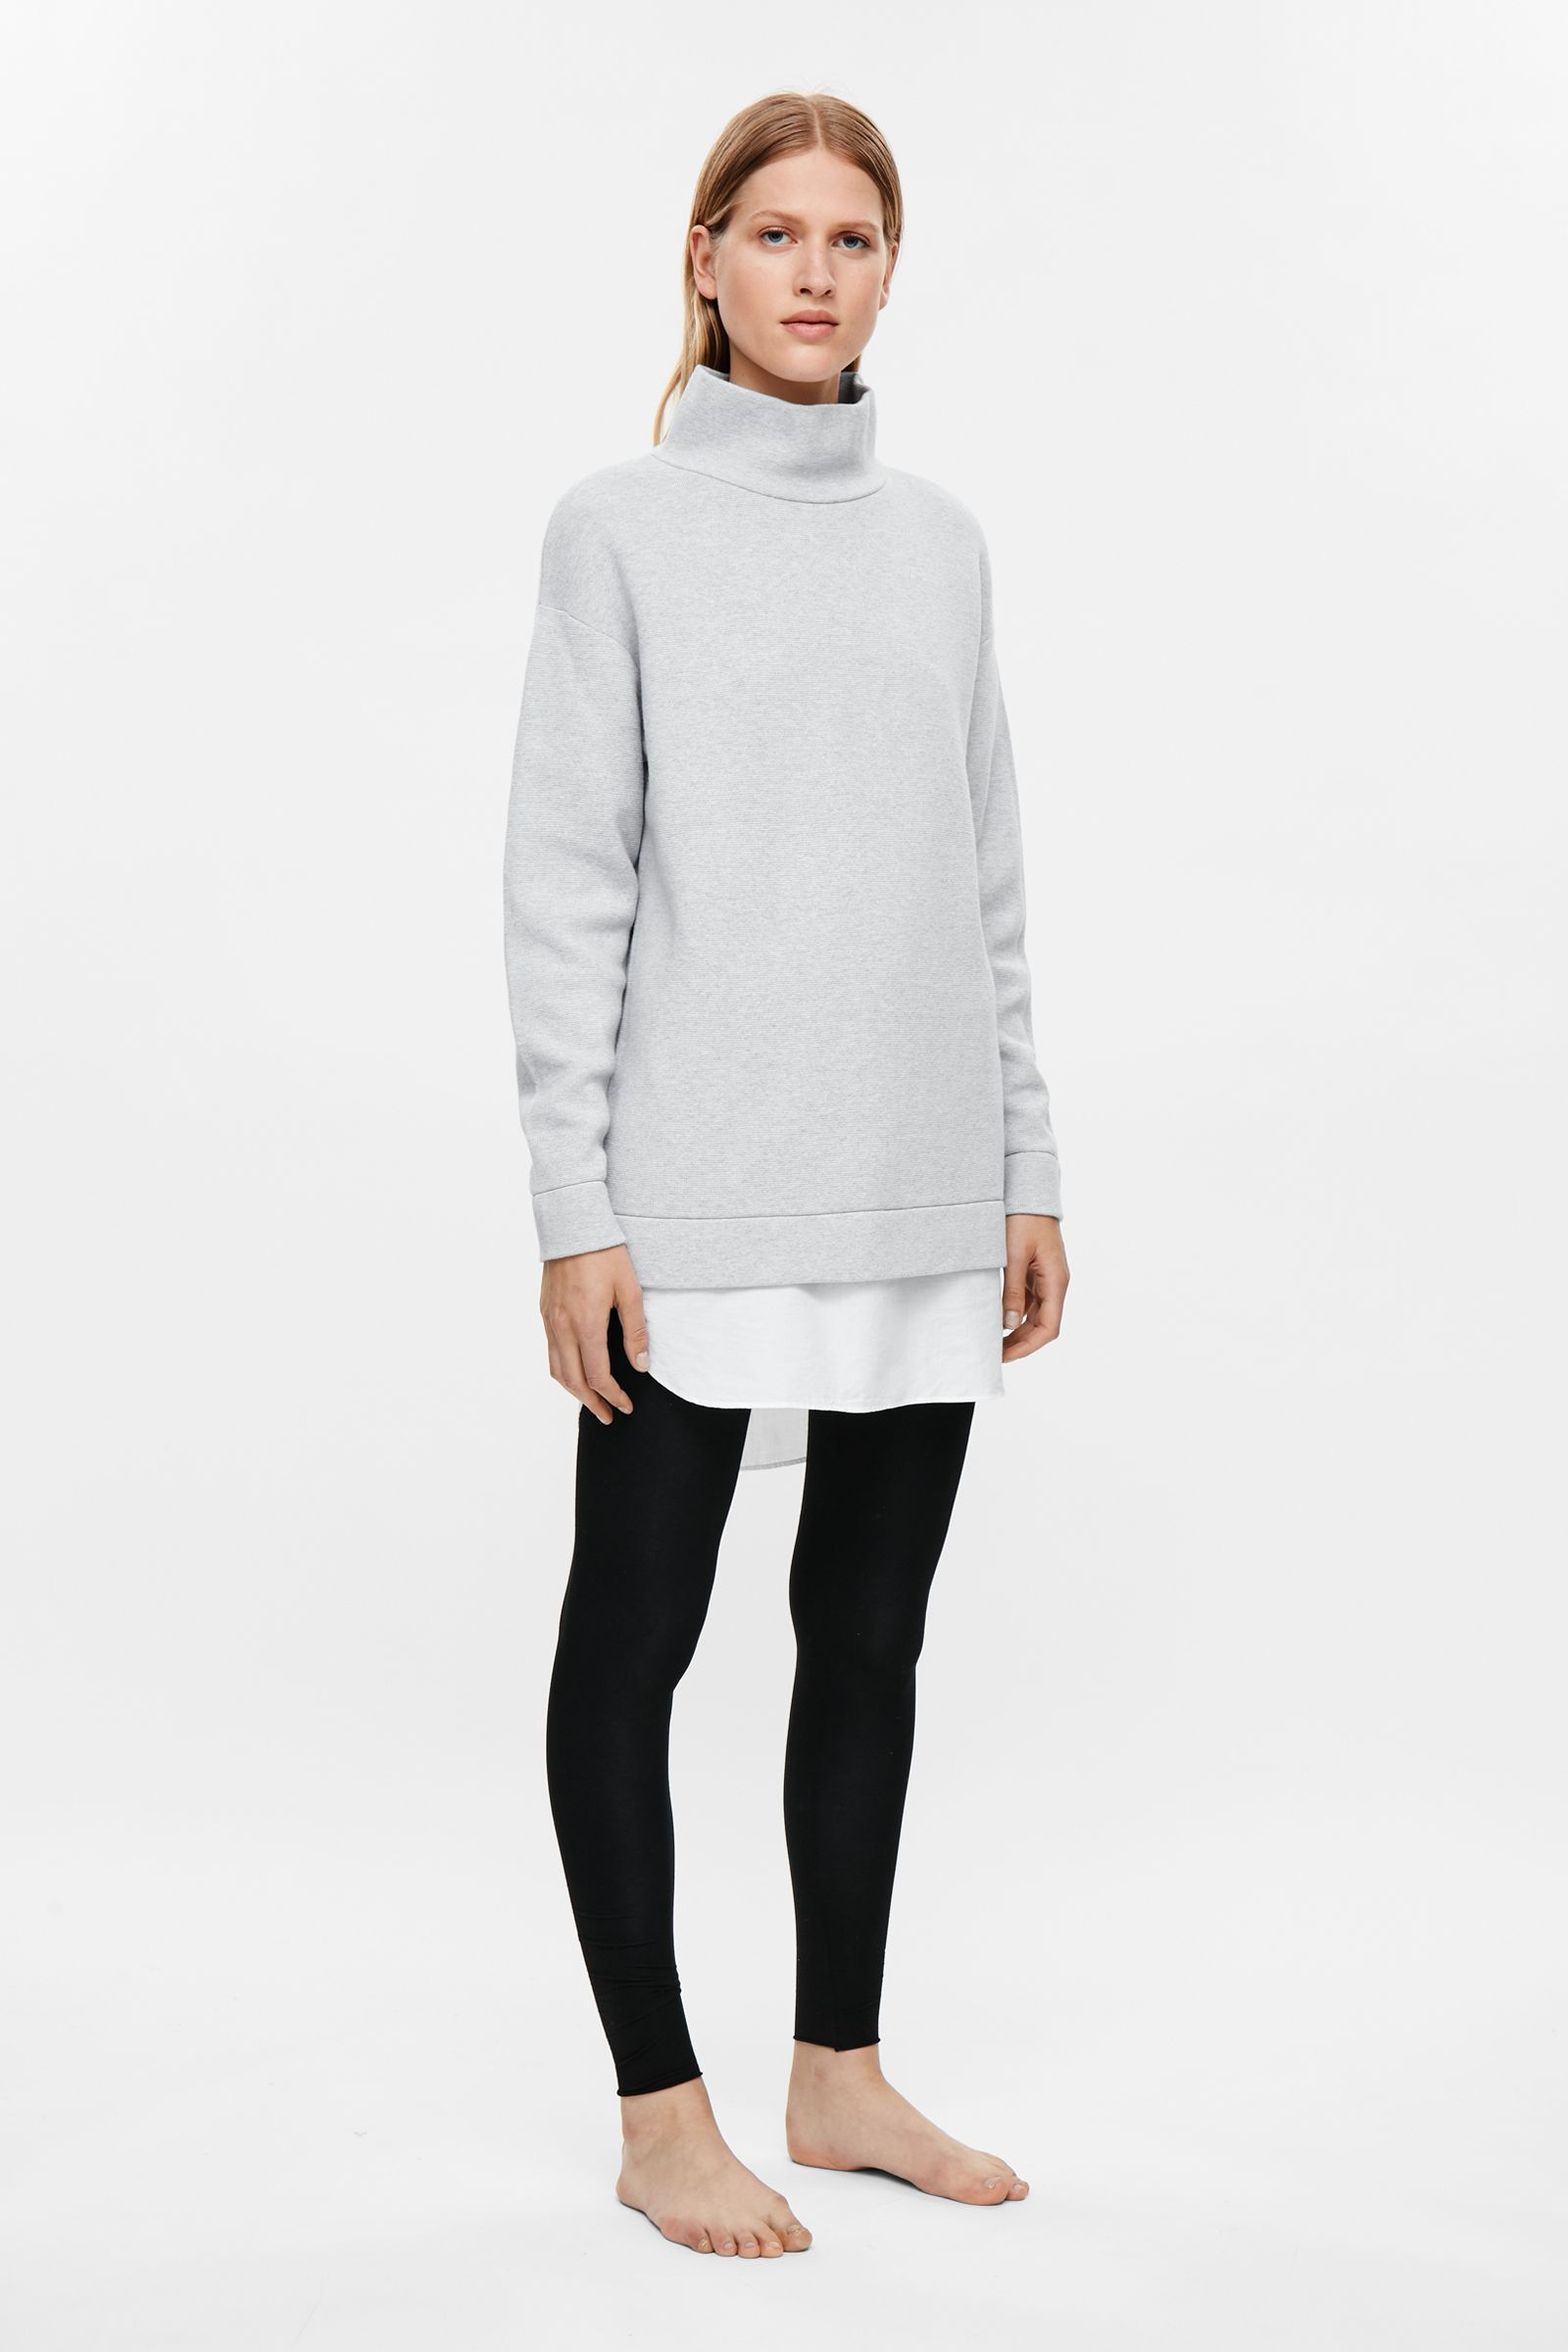 c93d19e8f COS image 1 of Oversized milano knit jumper in Light Grey